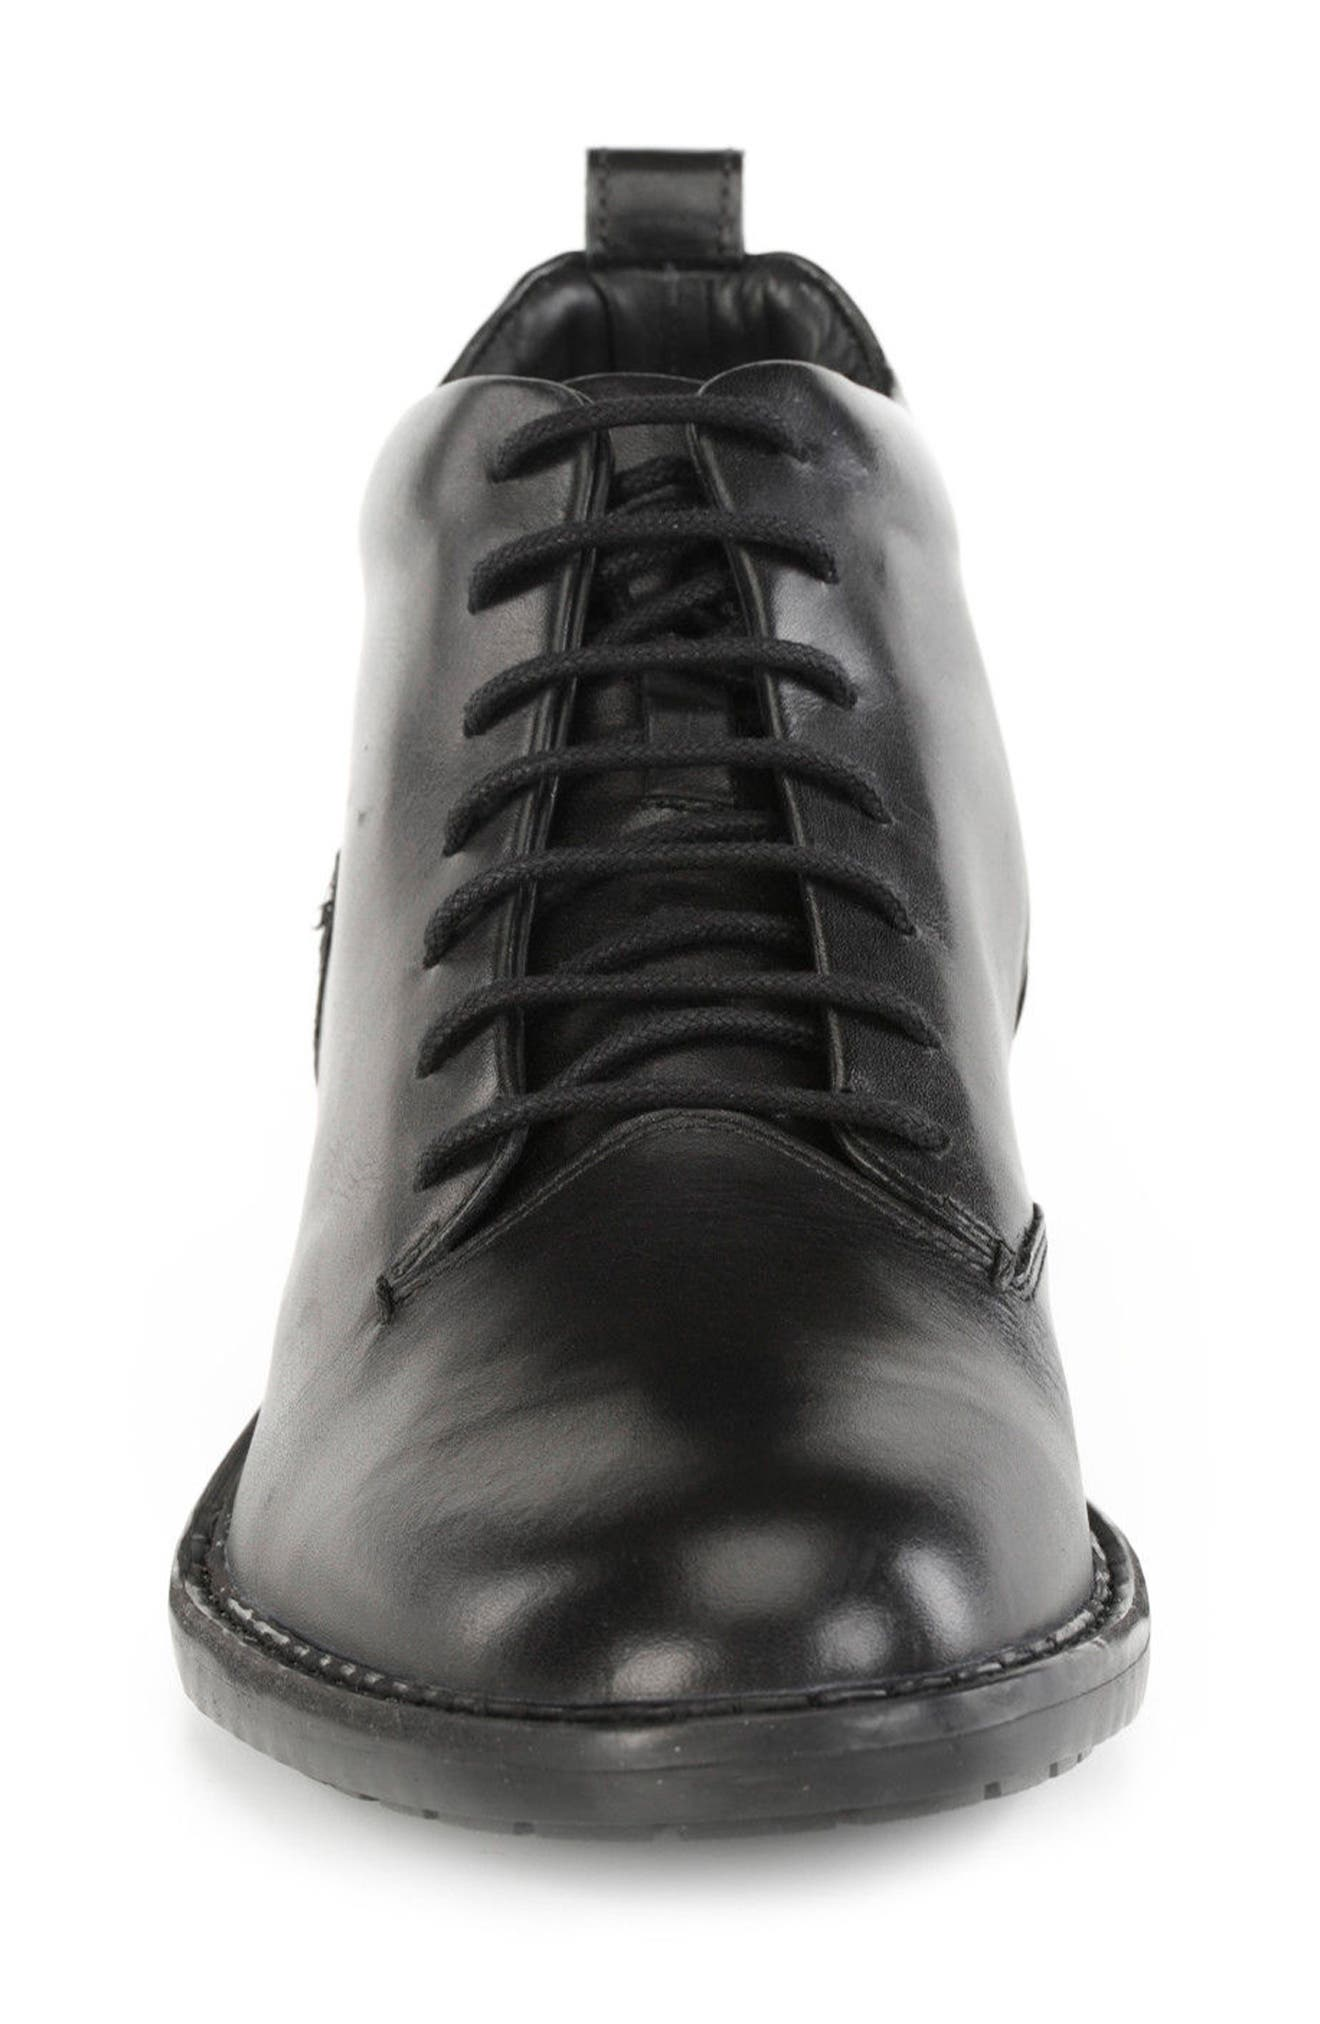 Kapsian Plain Toe Boot,                             Alternate thumbnail 4, color,                             Black